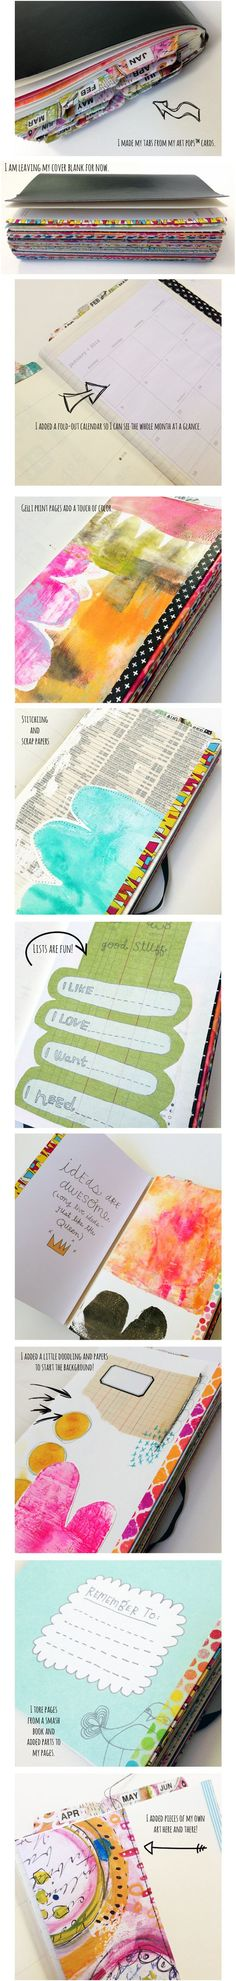 Washi tape the pages to make a beautiful journal.